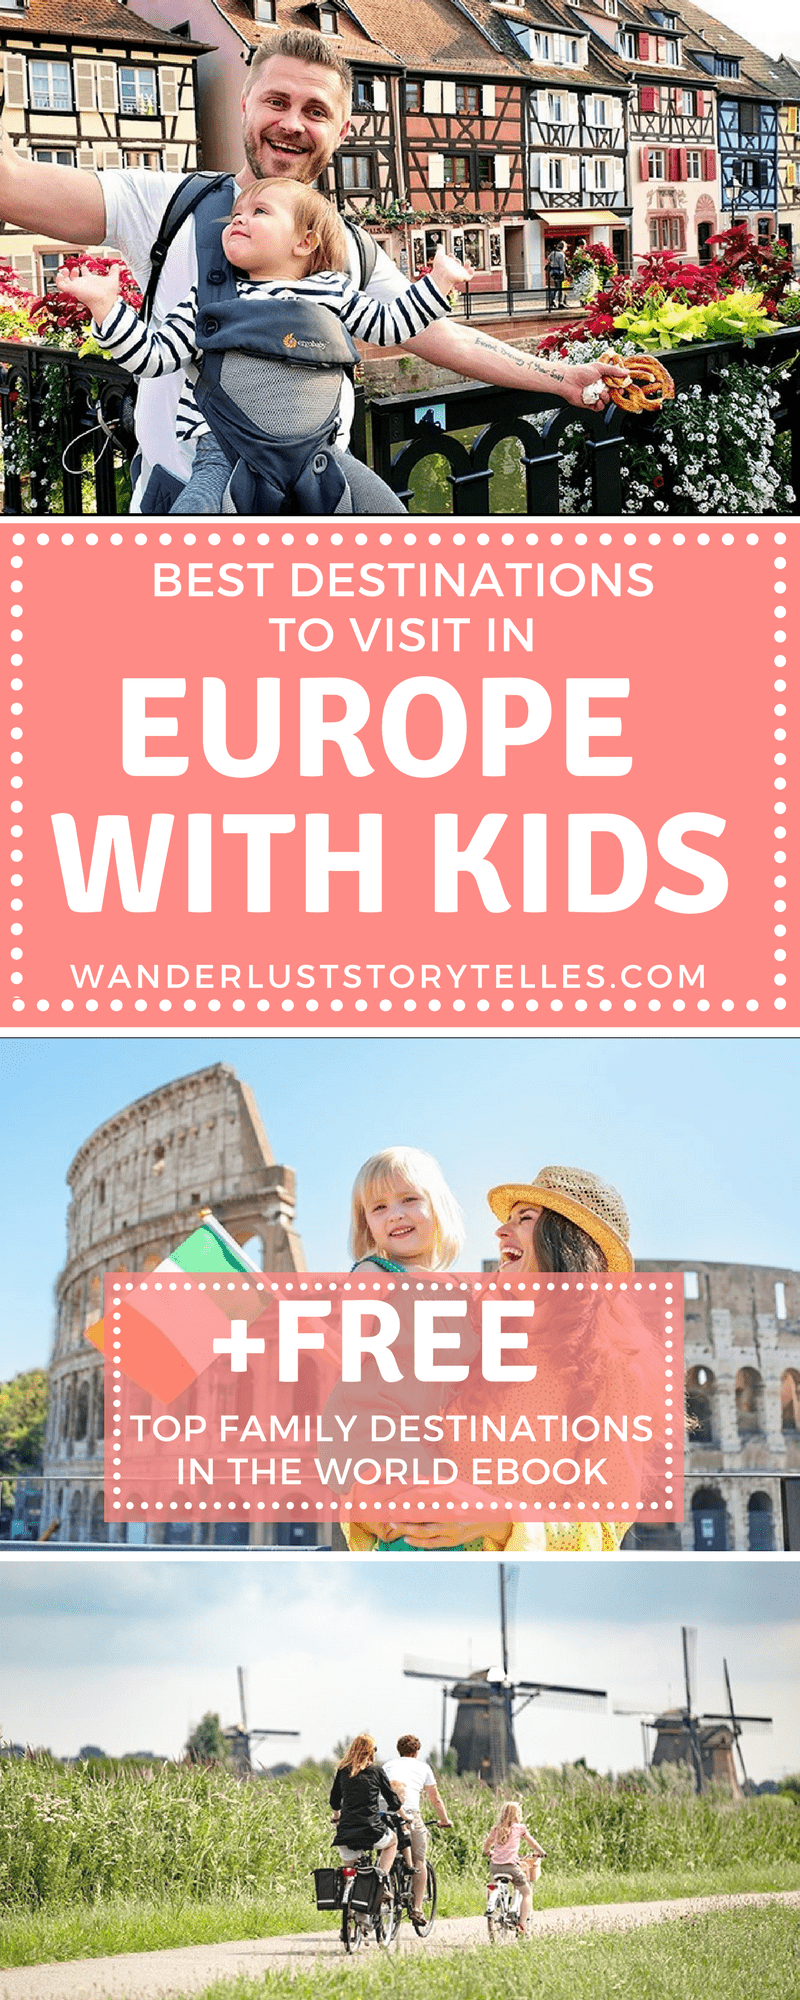 Click to see a list of 11 of the best destinations to visit in Europe with kids! PLUS get your free Ebook to see the best family destinations across the world! .......................................................................................................... Family Holiday Destinations | Europe Family Trip | Family Vacation Ideas | Europe with Kids | What to see in Europe with Kids .....................................................#europe_vacations #familytravel #travelwithkids